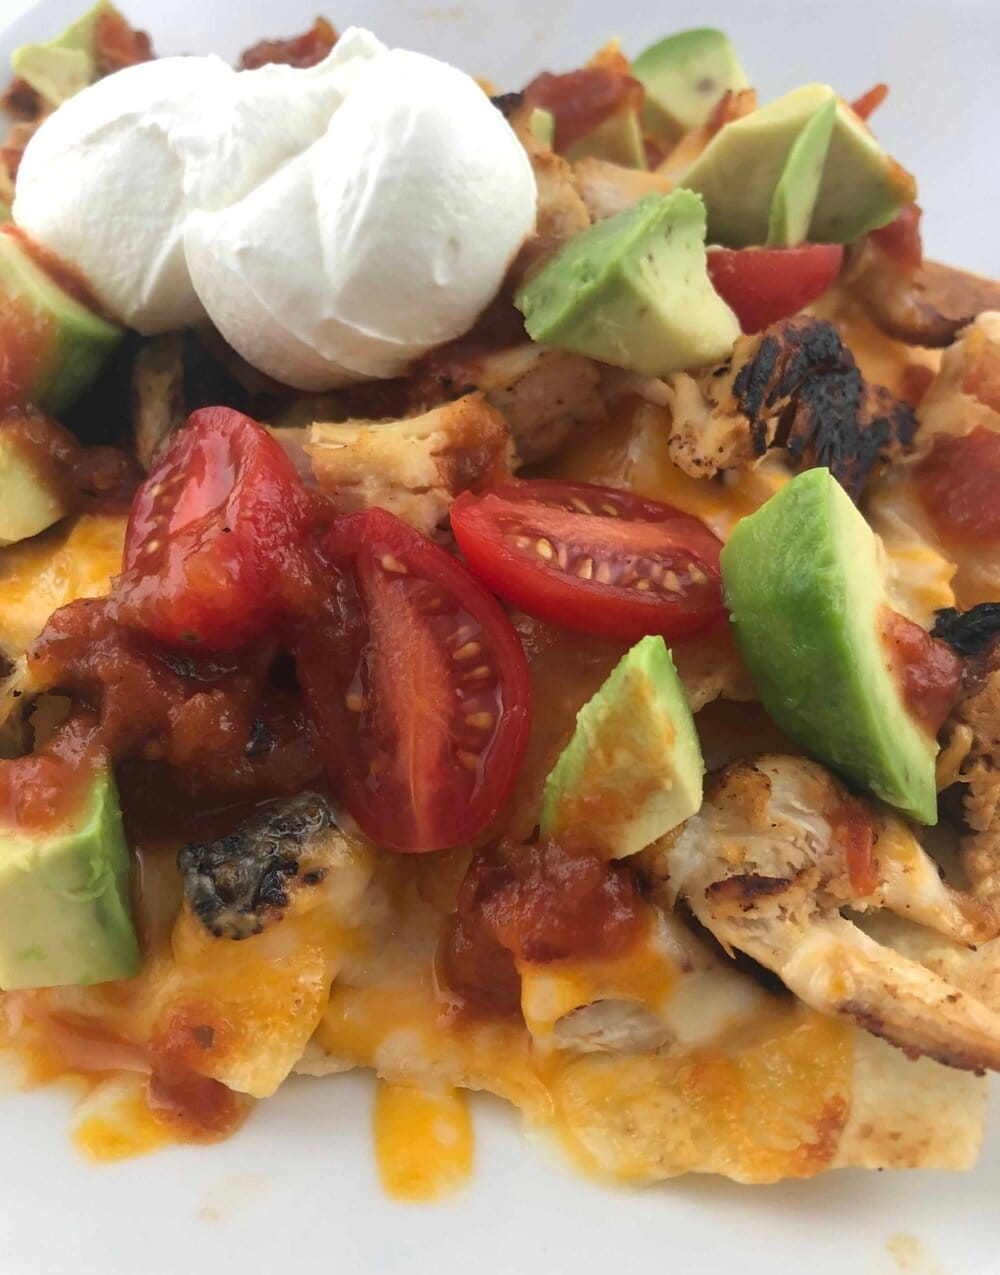 Missouri Girl Grilled Nachos with marinated grilled chicken. Missouri Girl Blog.